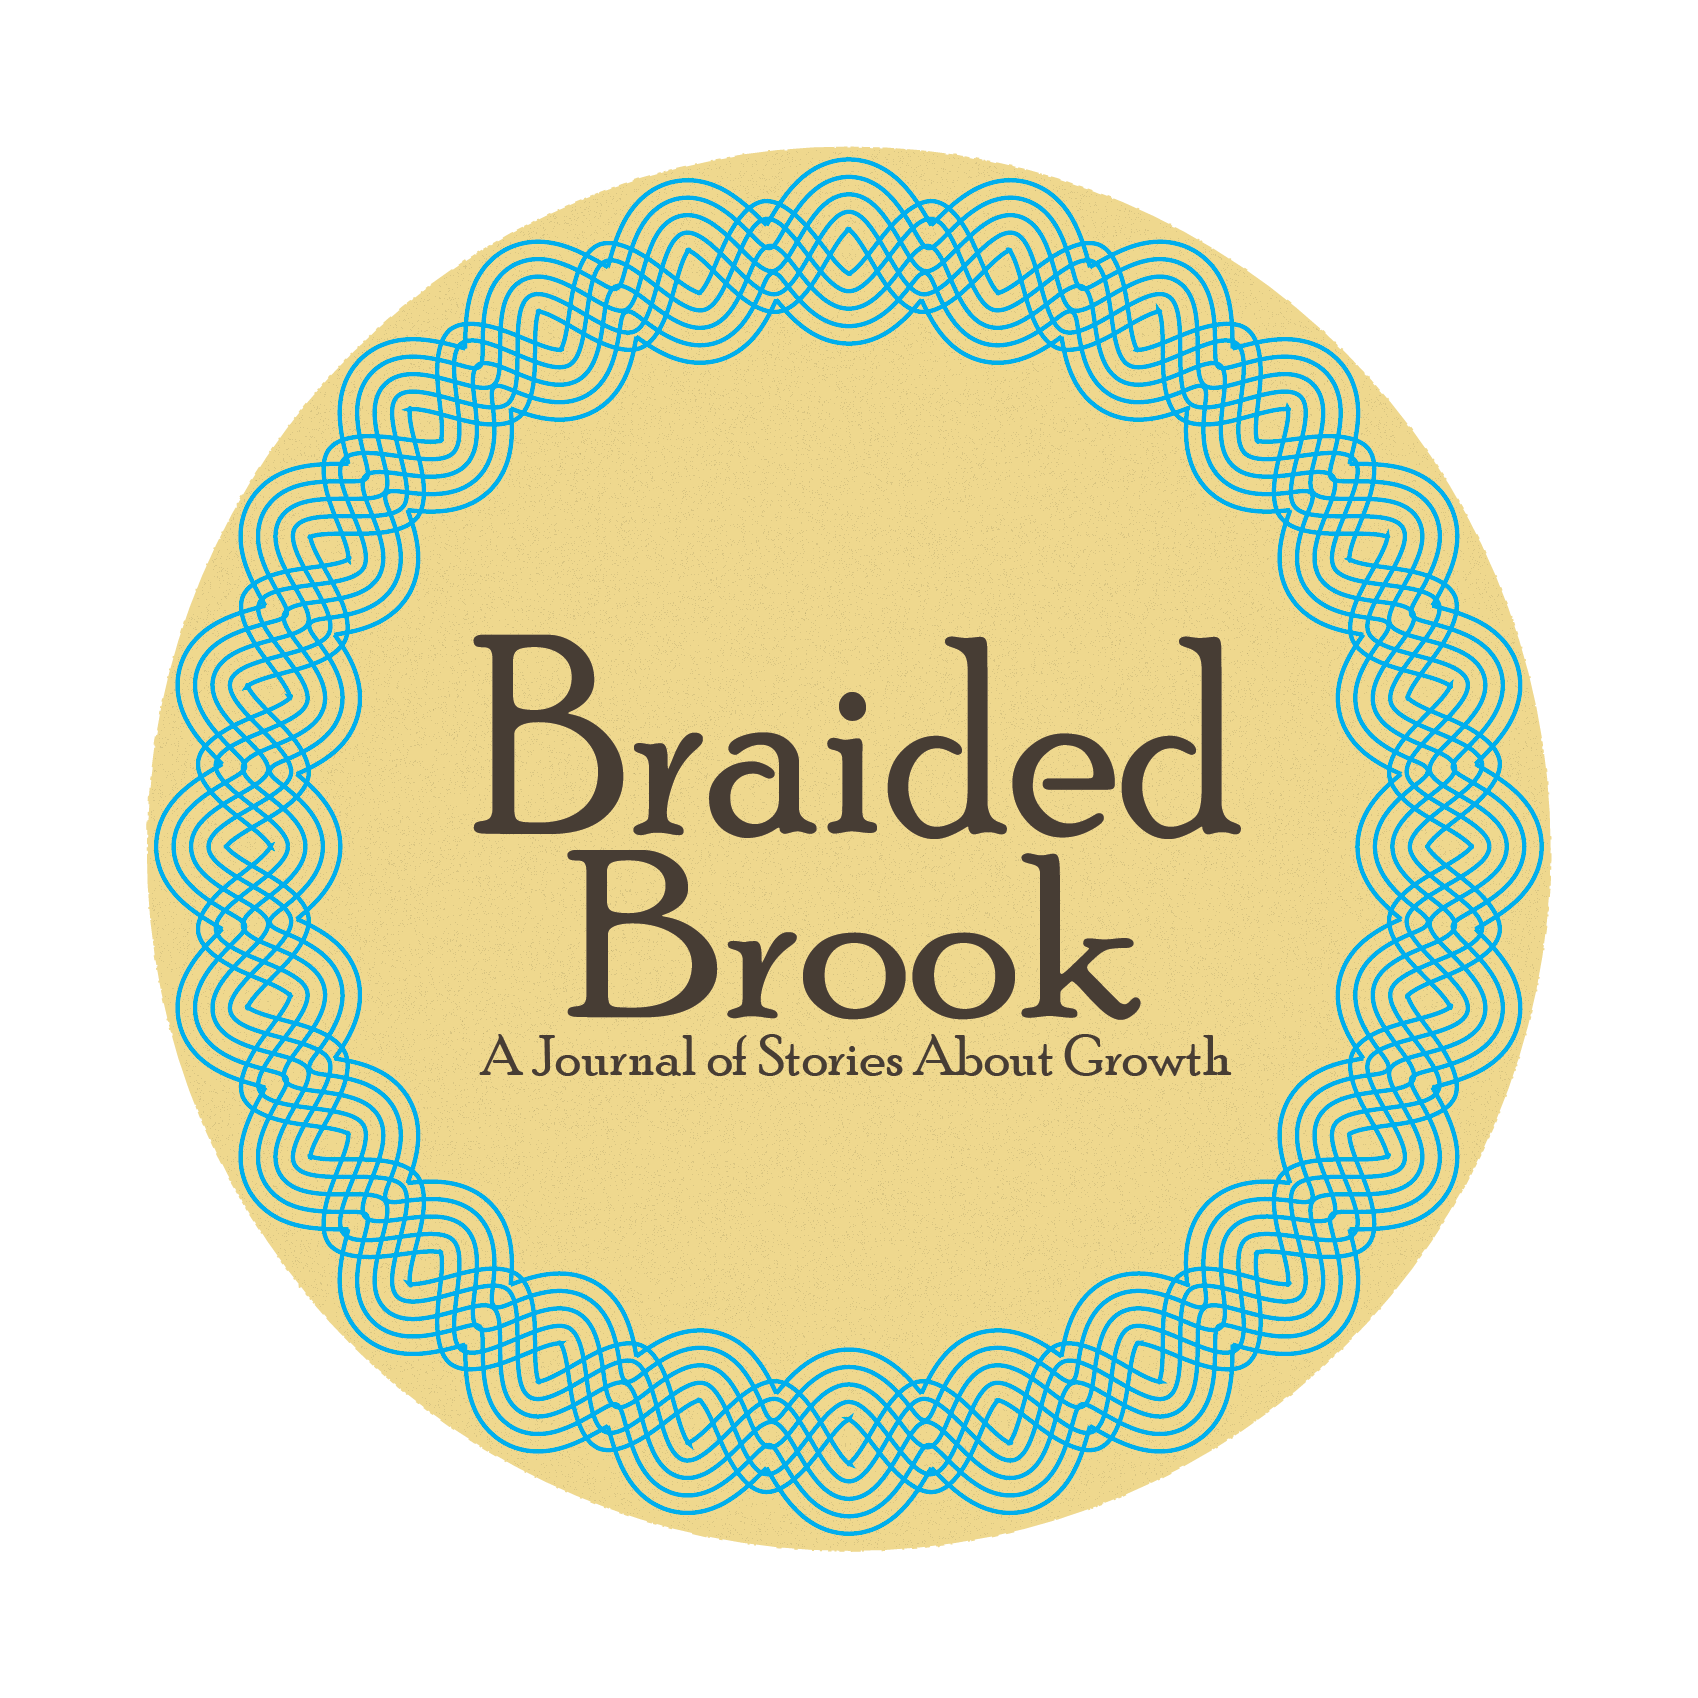 braided brook logo